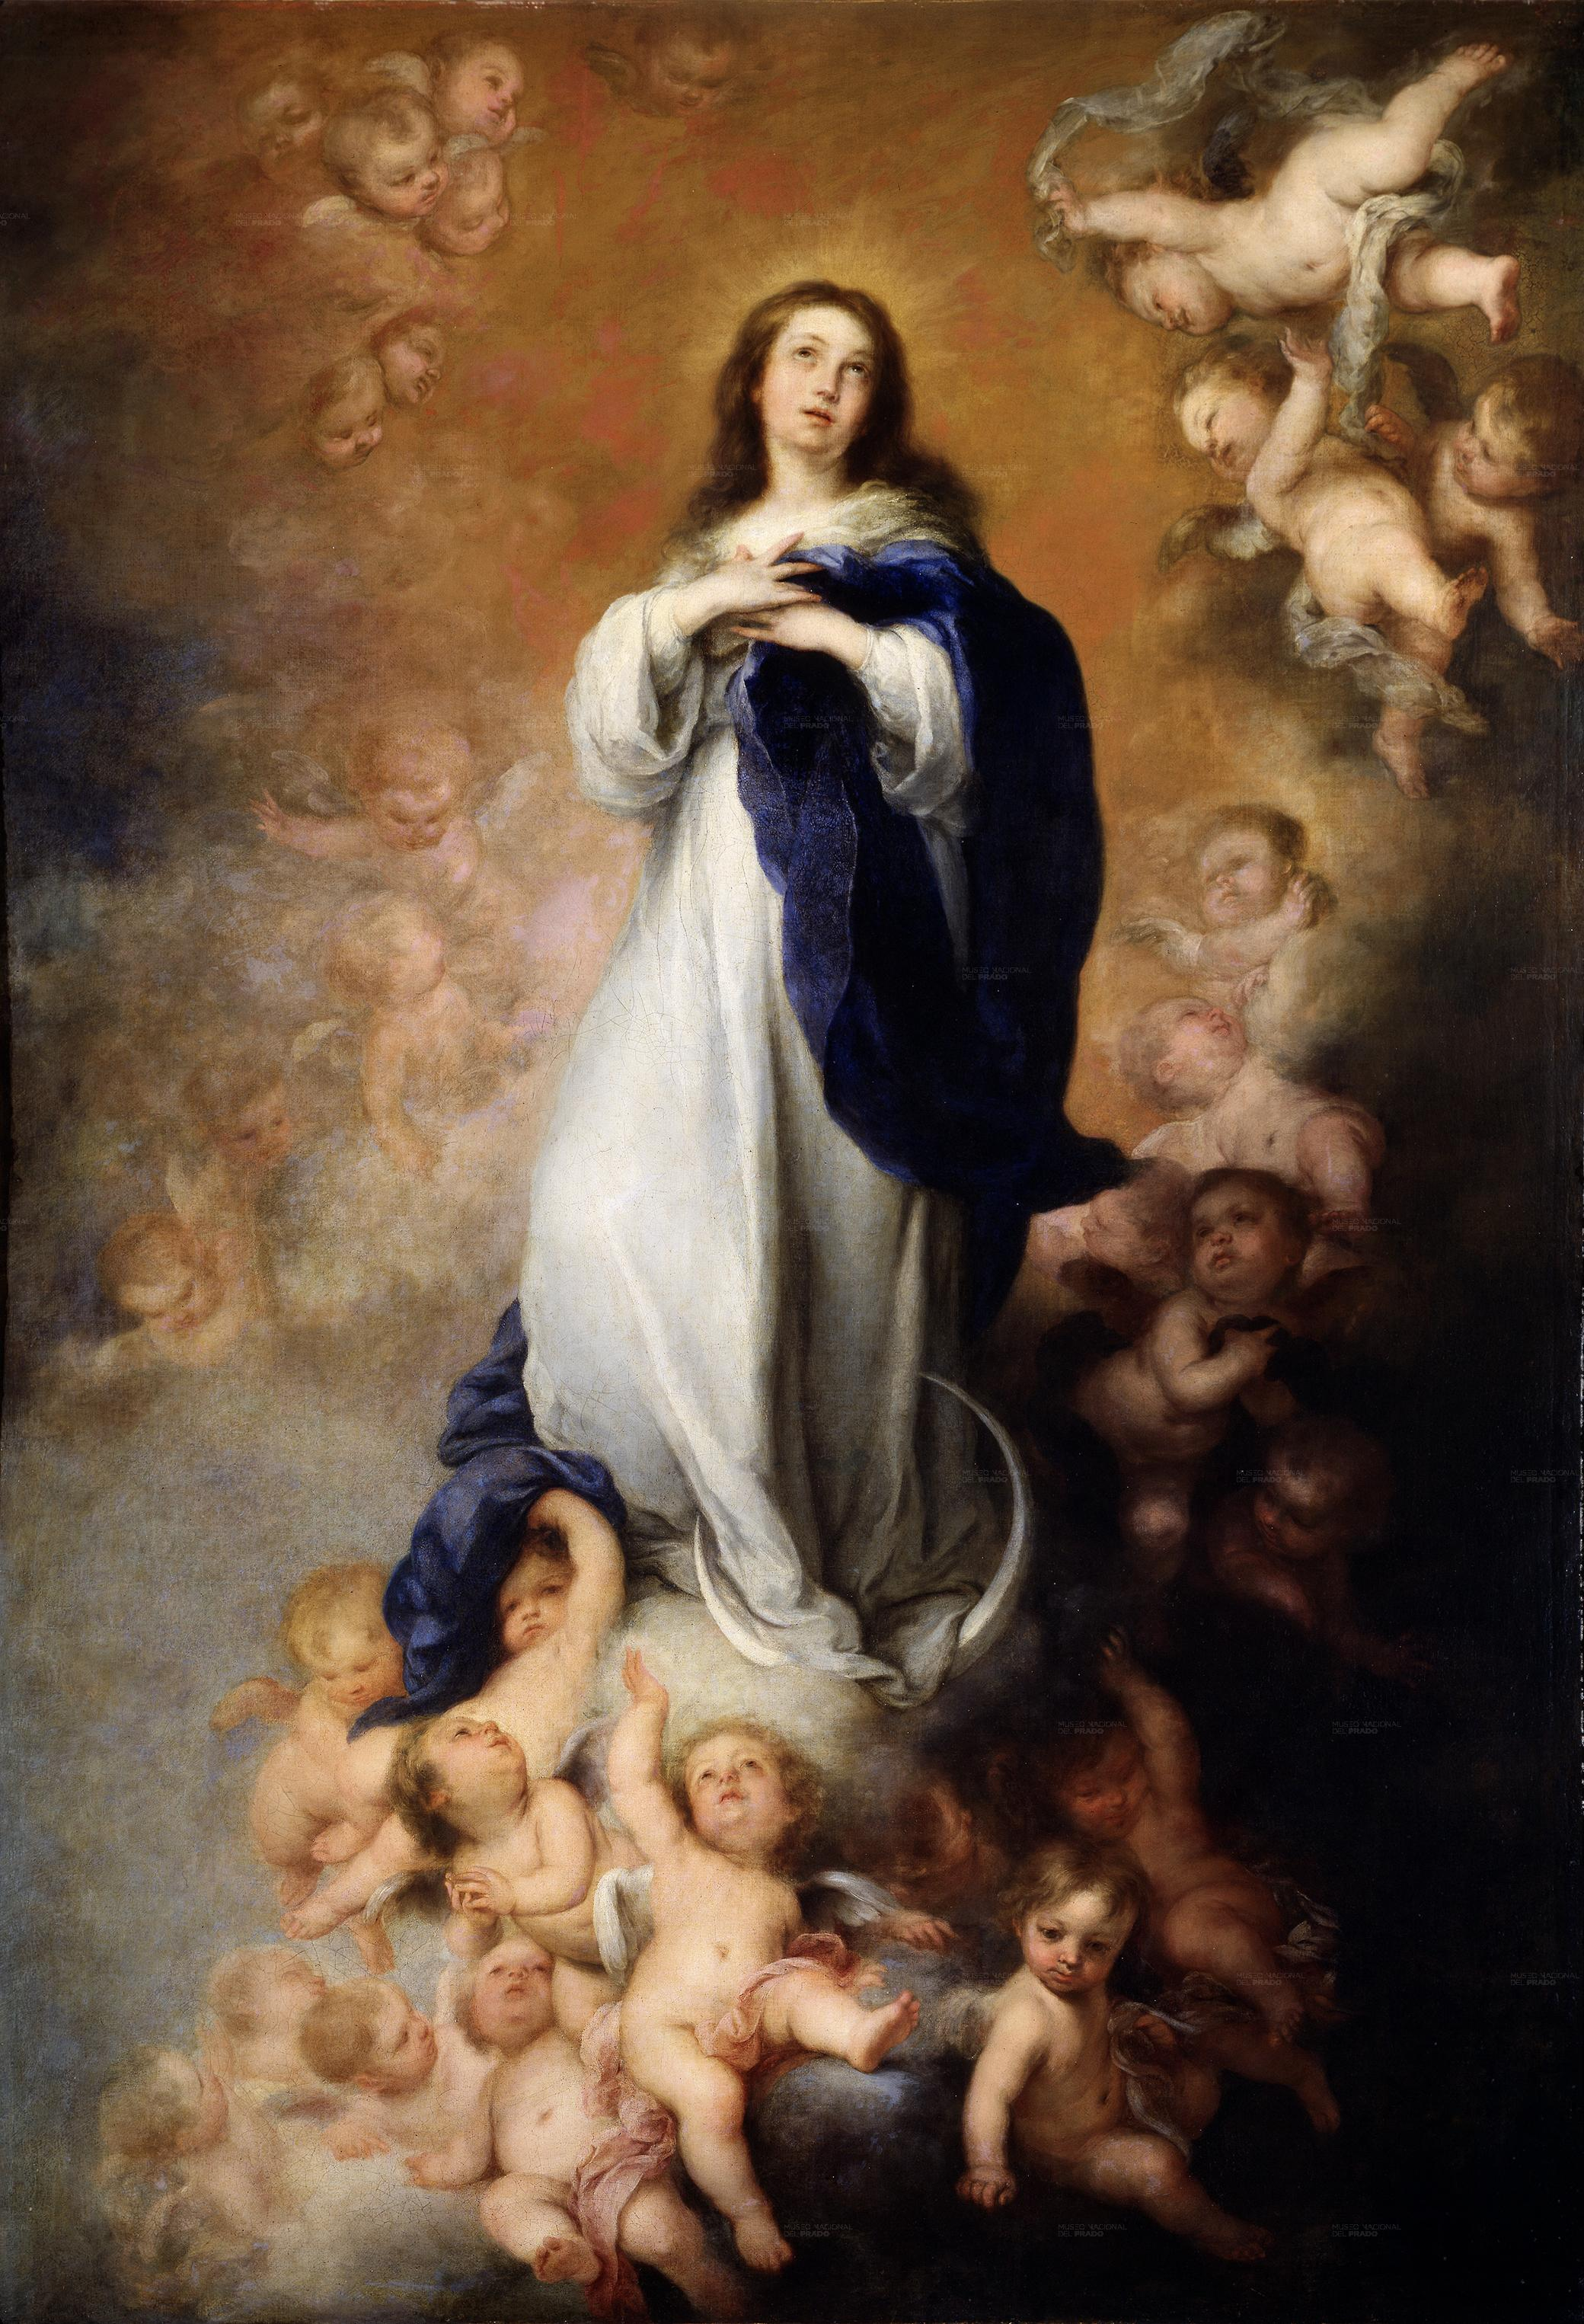 http://en.academic.ru/pictures/enwiki/77/Murillo_immaculate_conception.jpg